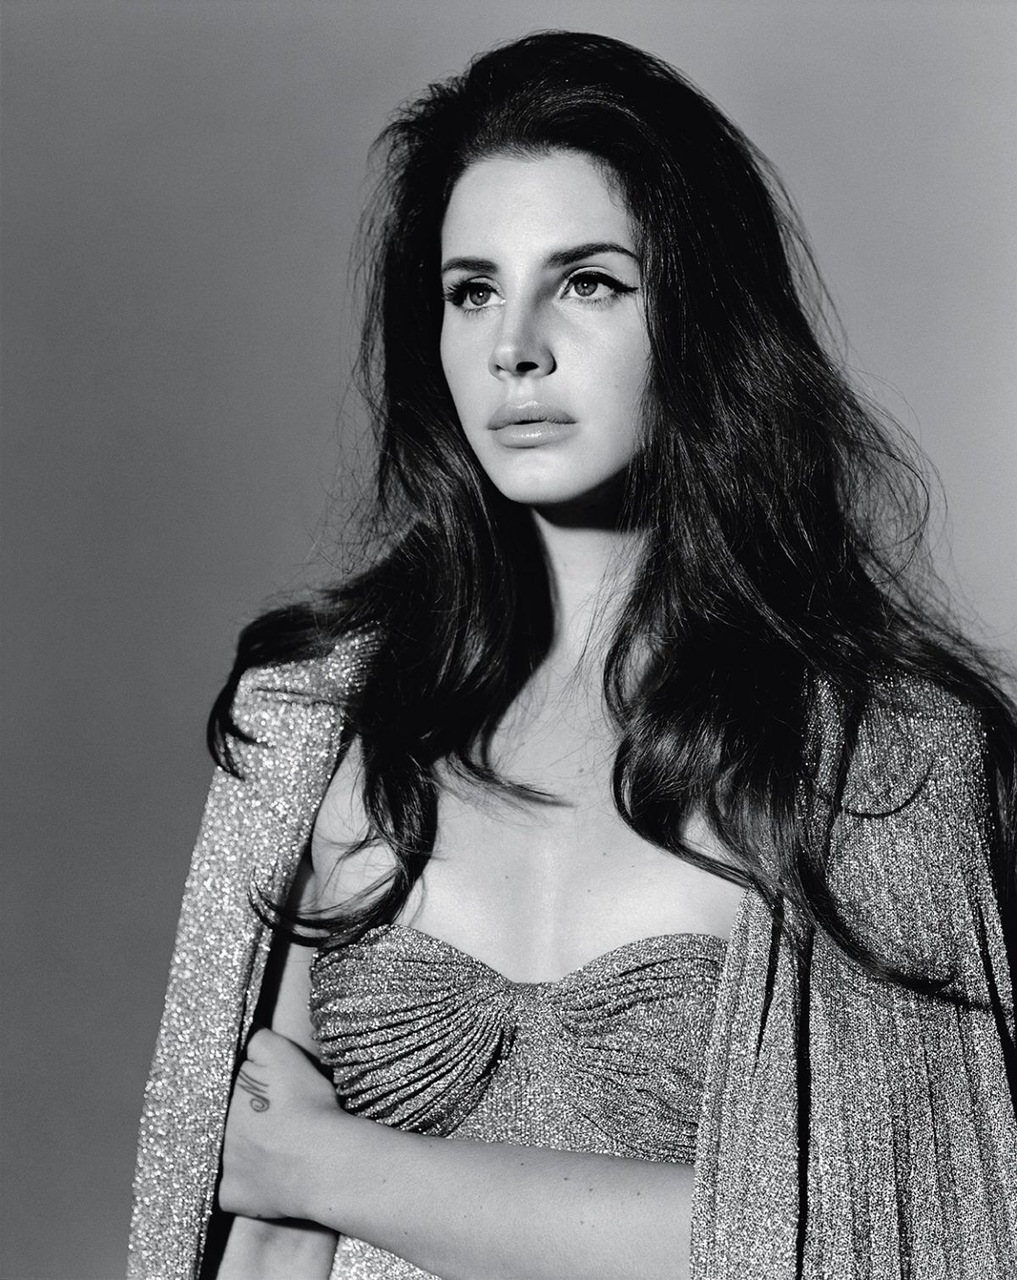 beautiful, black, black and white, brunette, celebrity, chic, classy, clothes, cute, dress, famous, fashion, girl, hair, it, lana del rey, lovely, luxury, make up, minimalism, people, photography, random, shining, shooting, singer, star, usa, woman